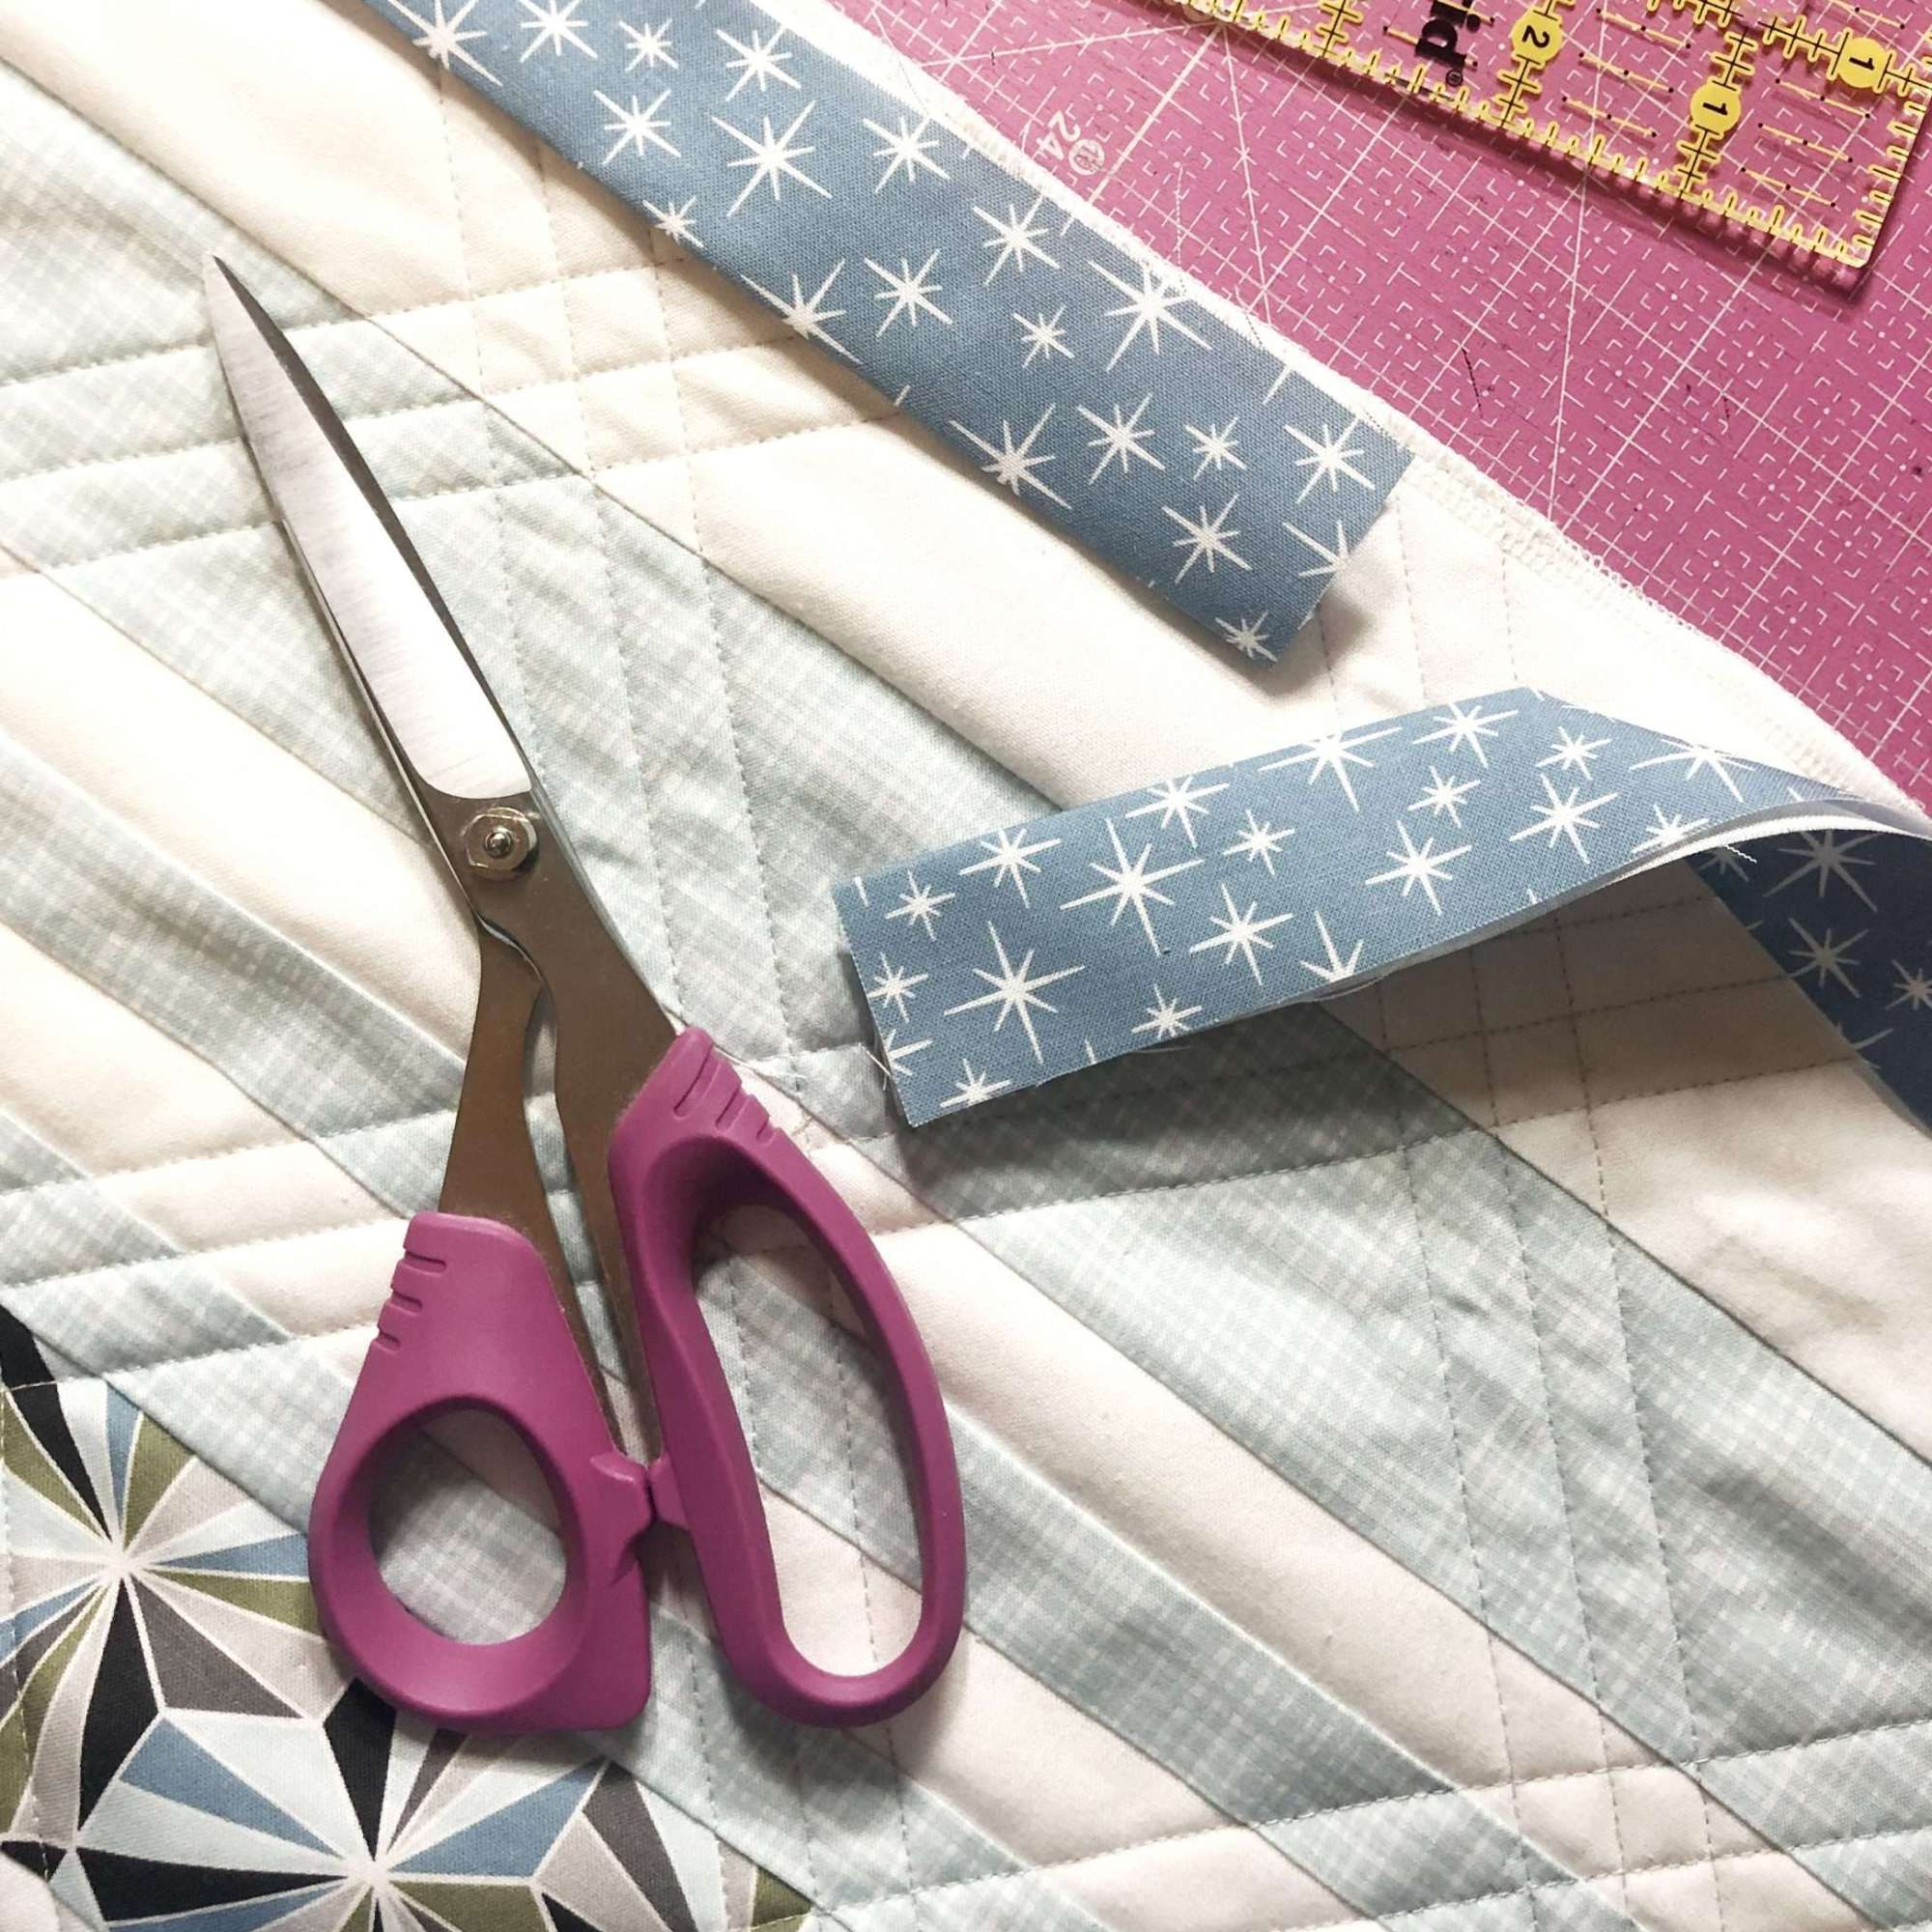 Joining the Ends of your quilt binding